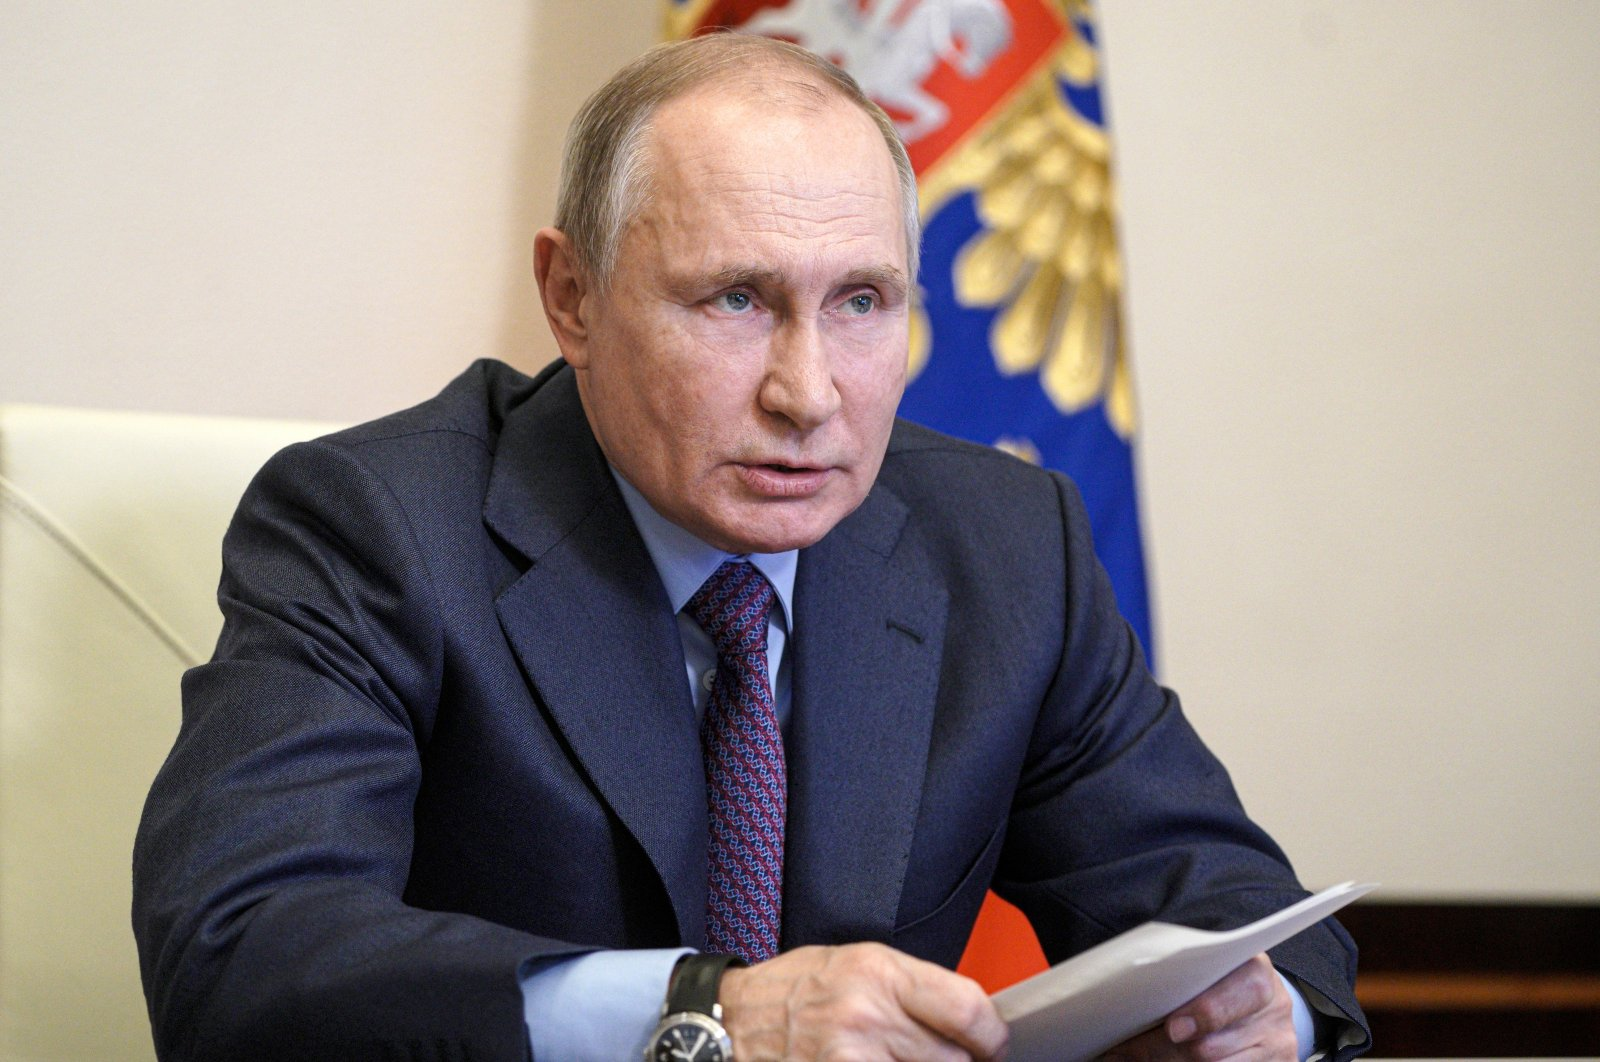 Russian President Vladimir Putin speaks during a meeting with government officials via video conference at the Novo-Ogaryovo residence outside Moscow, Russia, March 22, 2021. (AP Photo)